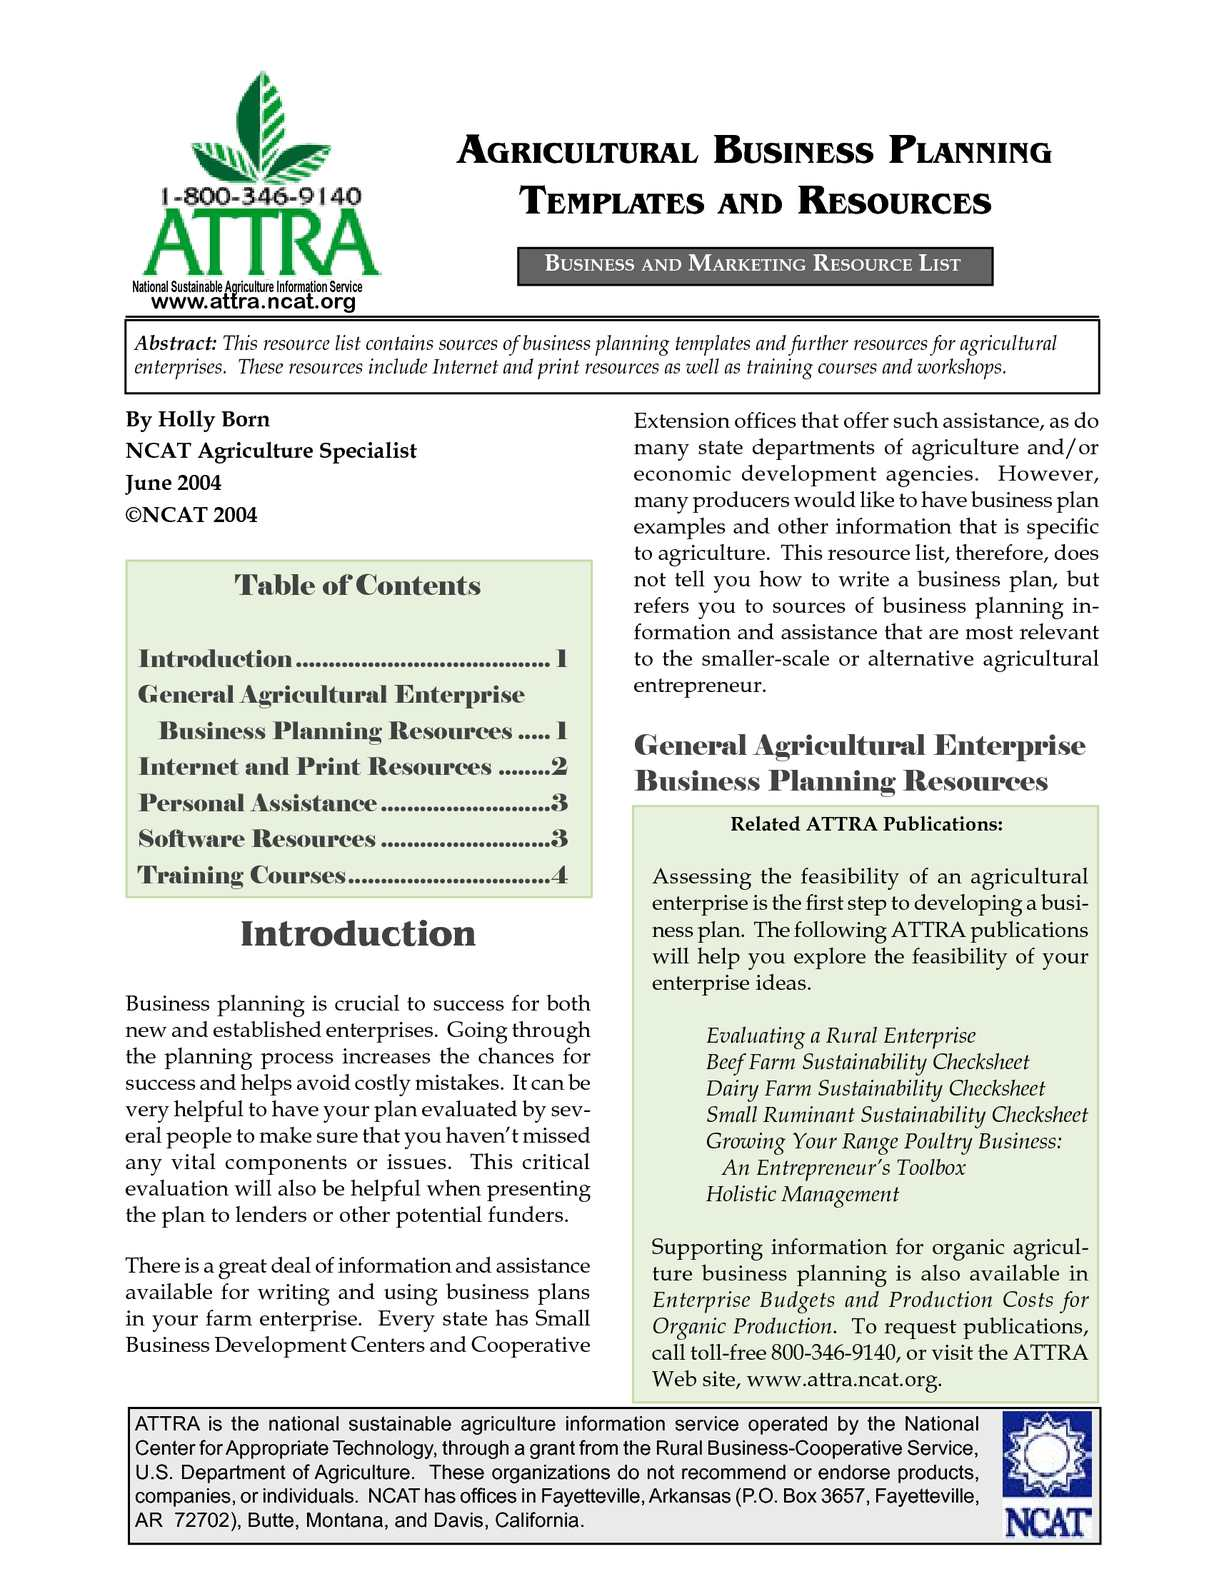 Calameo Agricultural Business Planning Templates And Resources